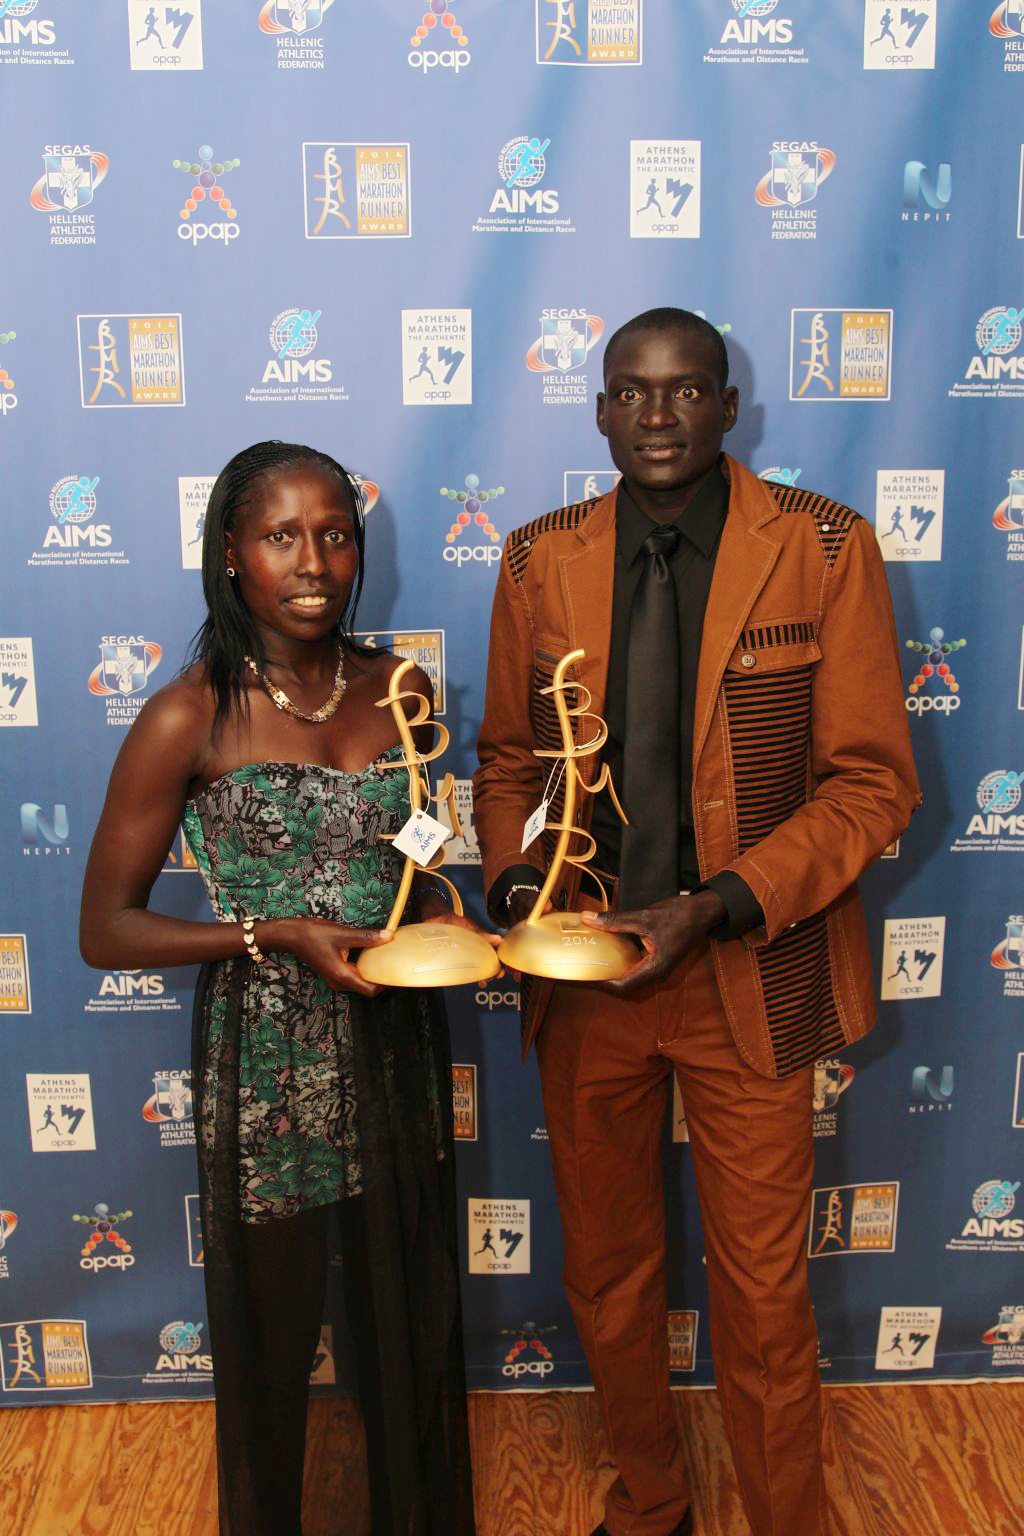 Article-273-florence-kiplagat-and-dennis-kimetto-aims-bmr-2014-by-marathon-photo